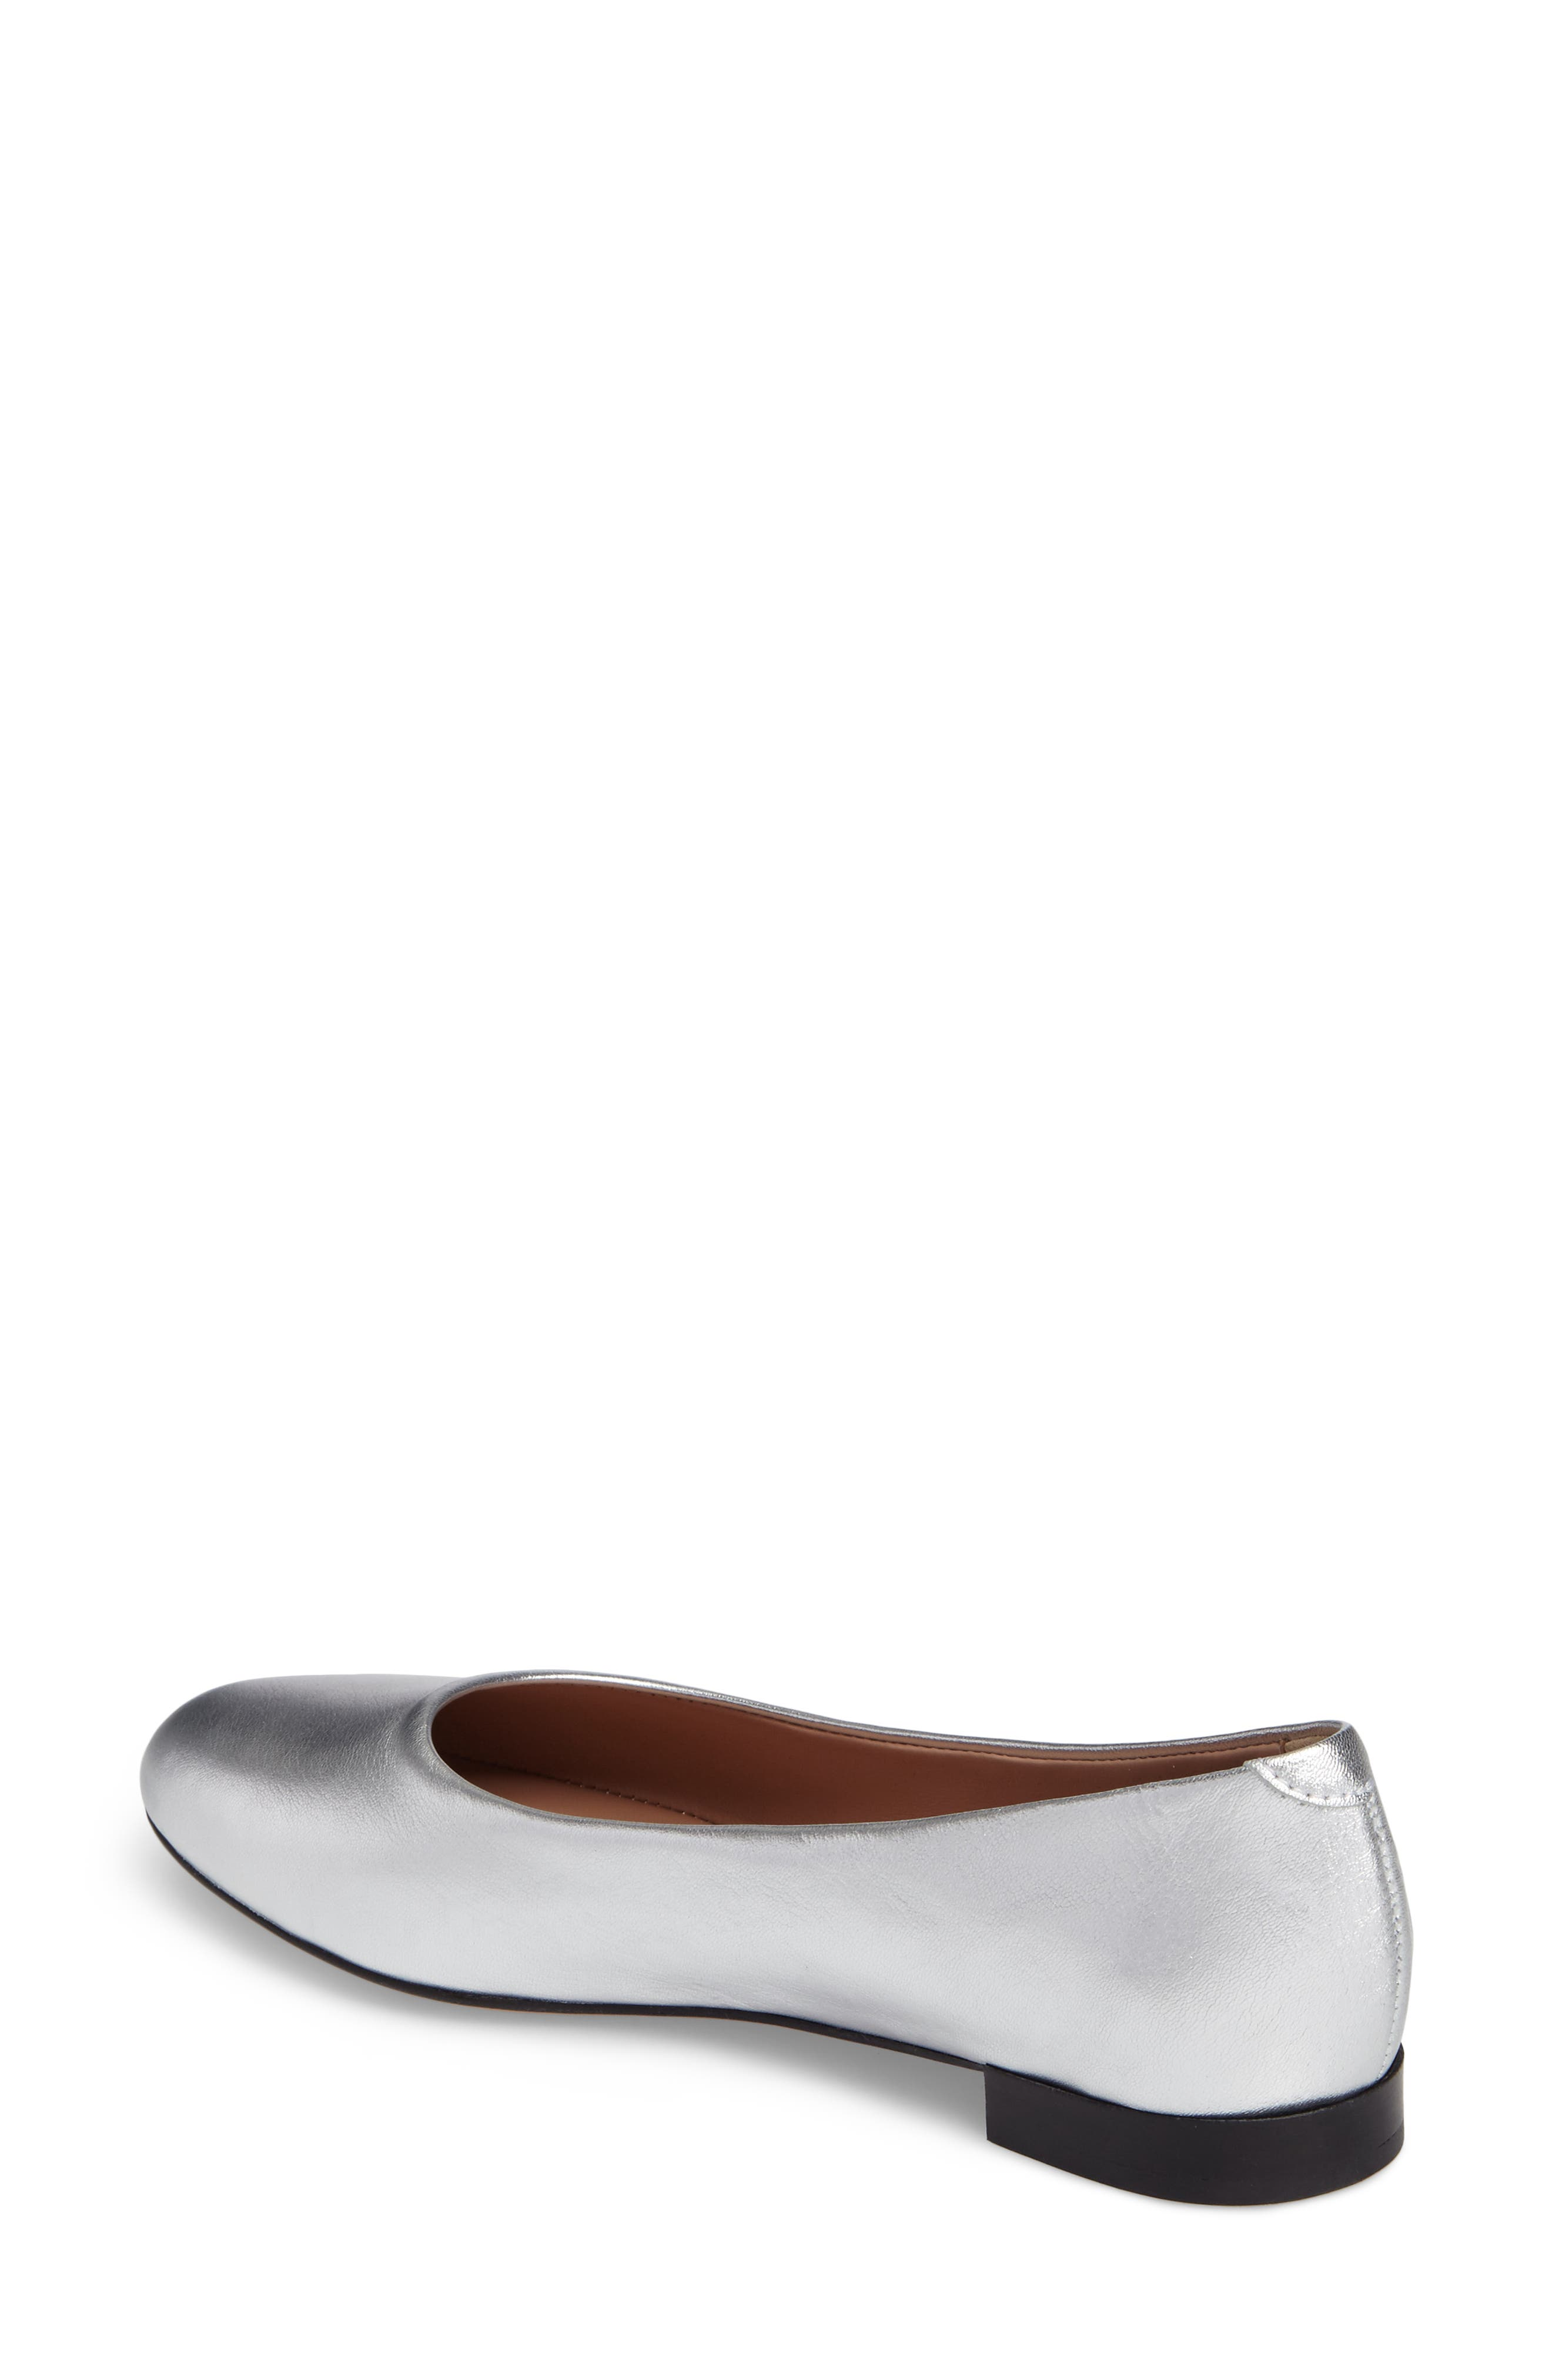 Gemma Ballerina Flat,                             Alternate thumbnail 2, color,                             Silver Leather